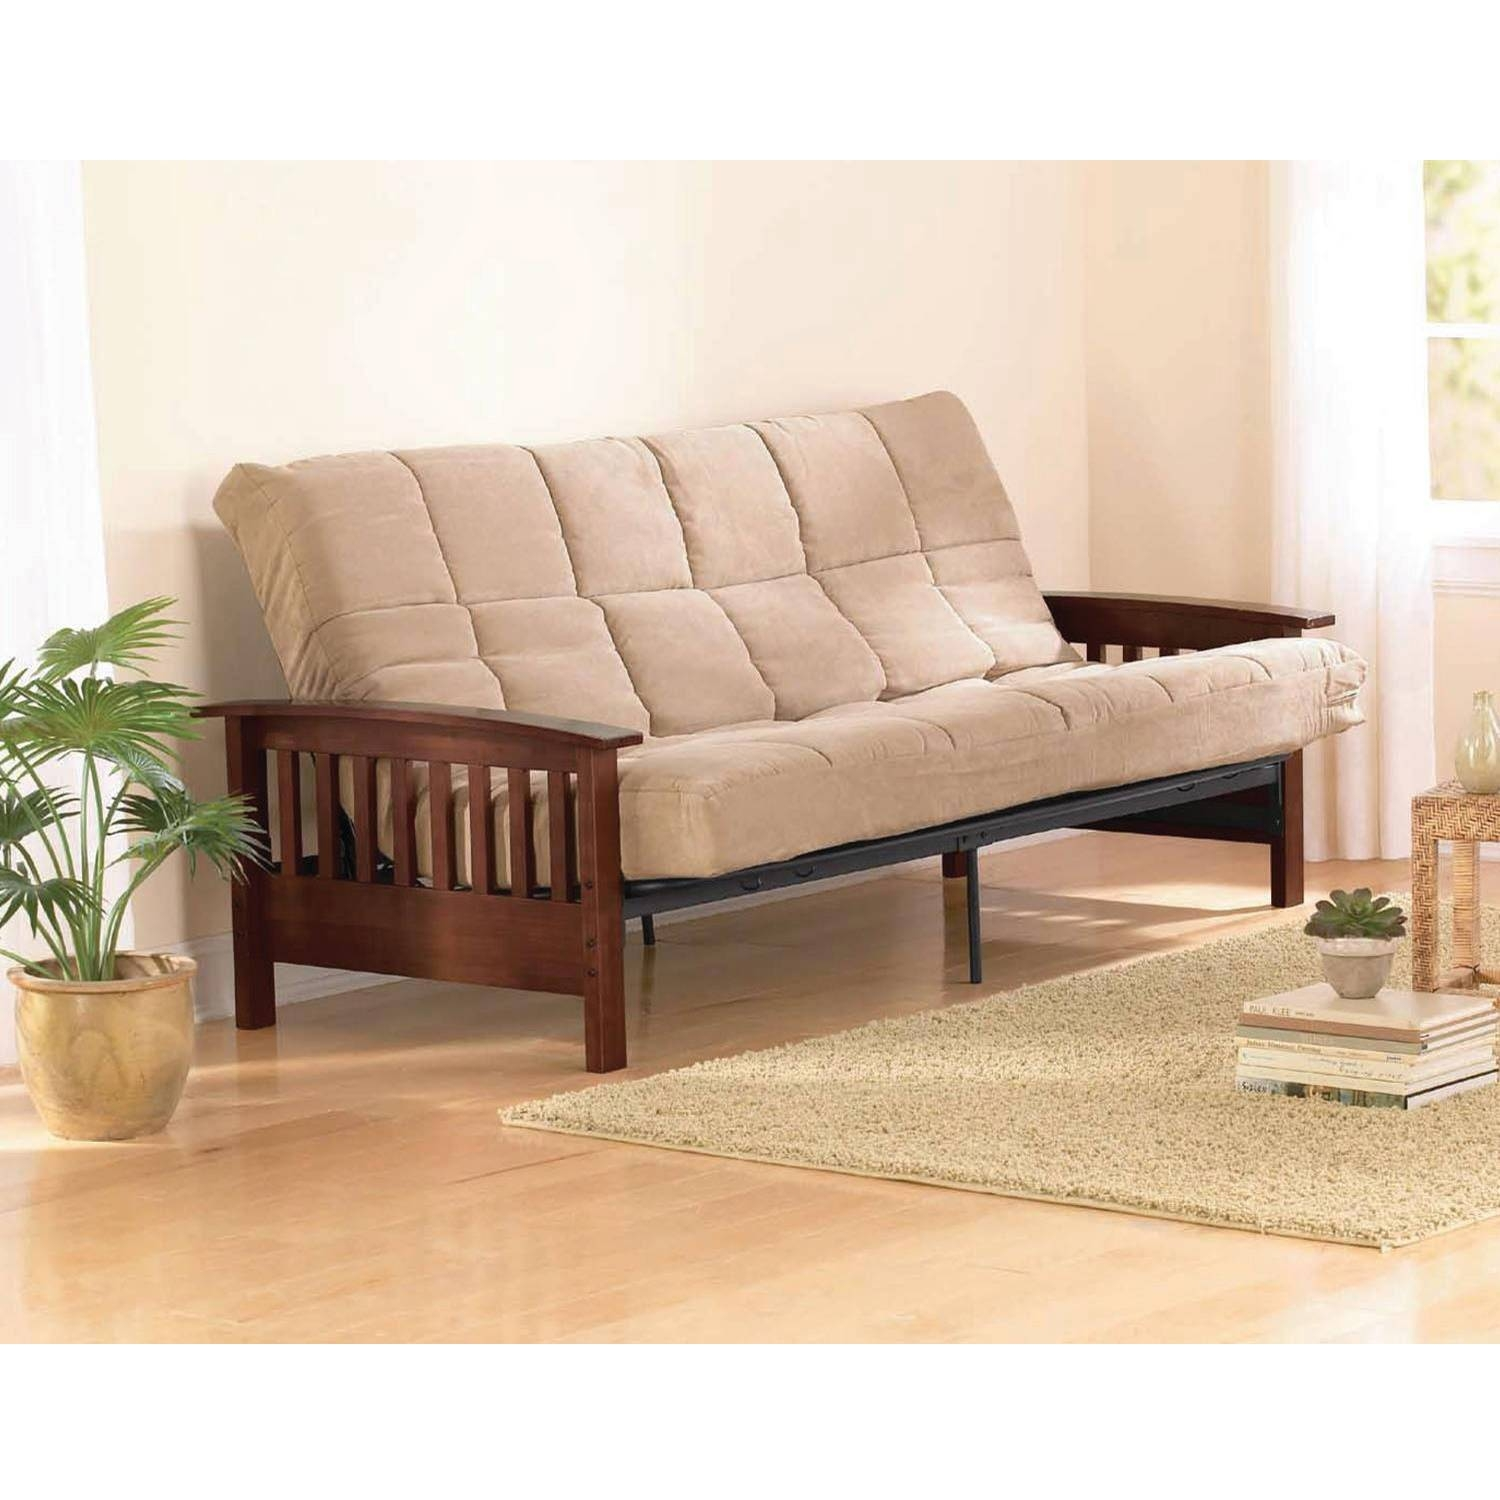 Atherton Home Taylor Convertible Futon Sofa Bed - Walmart with regard to Convertible Sofa Chair Bed (Image 1 of 15)